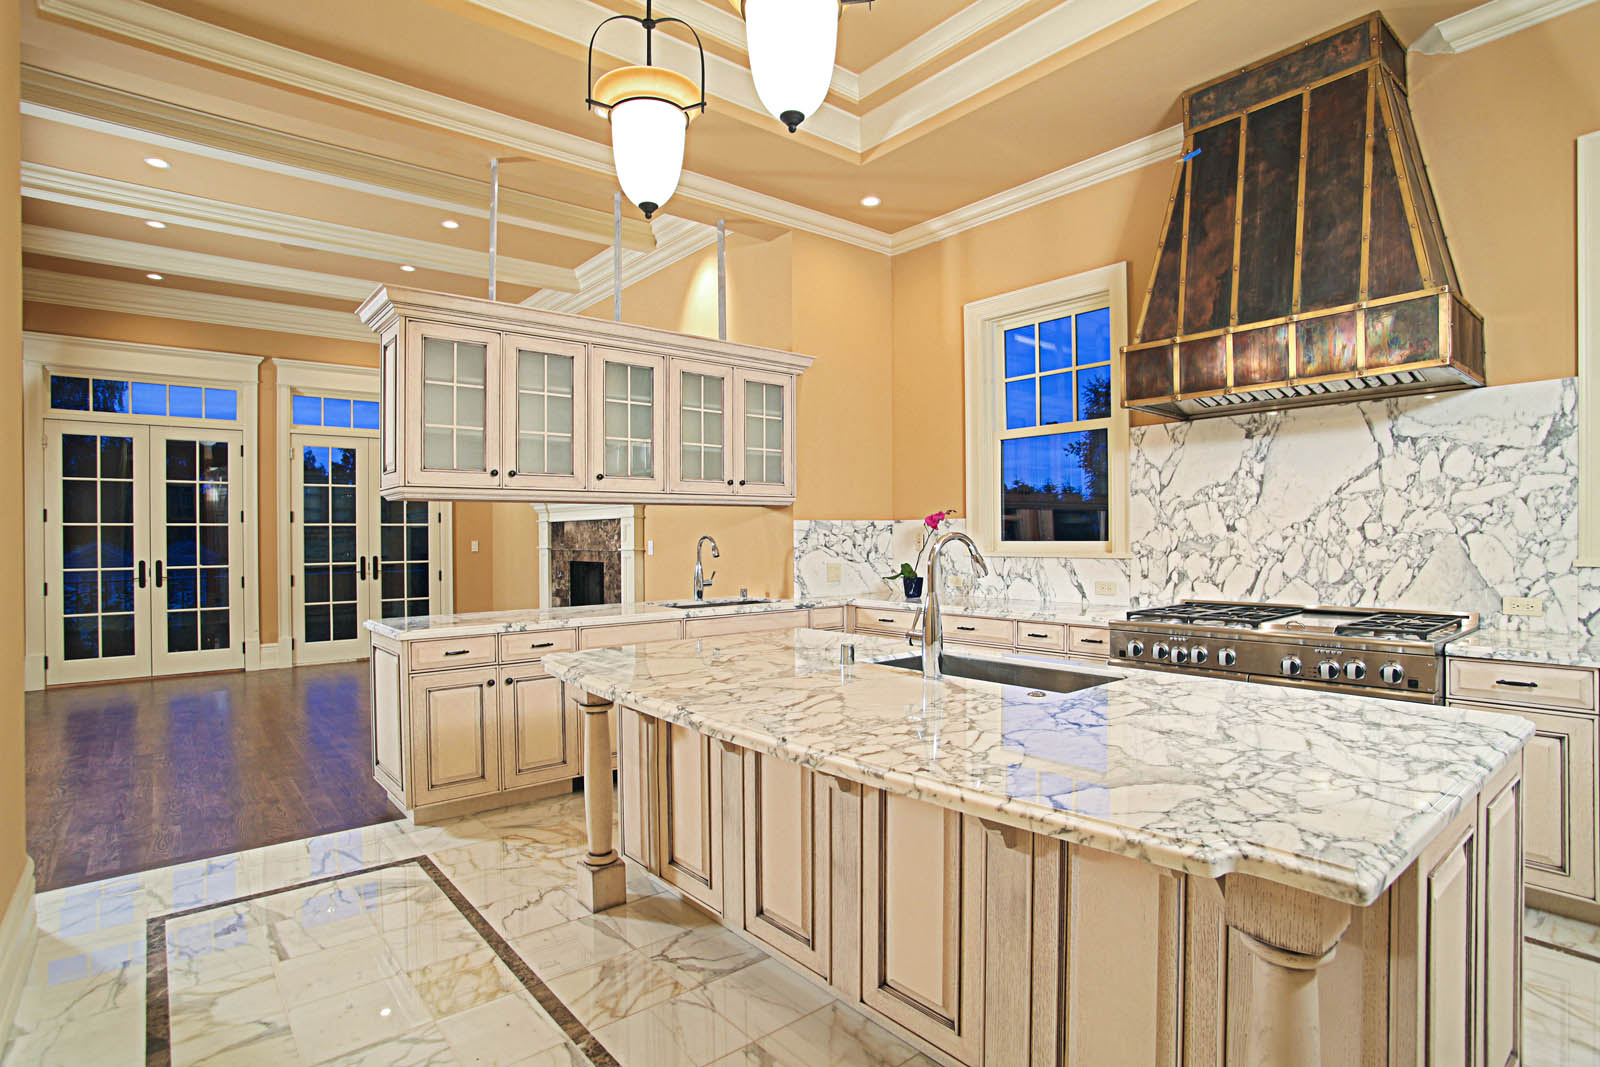 Kitchen floors gallery seattle tile contractor irc tile services kitchen floor 2b dailygadgetfo Image collections